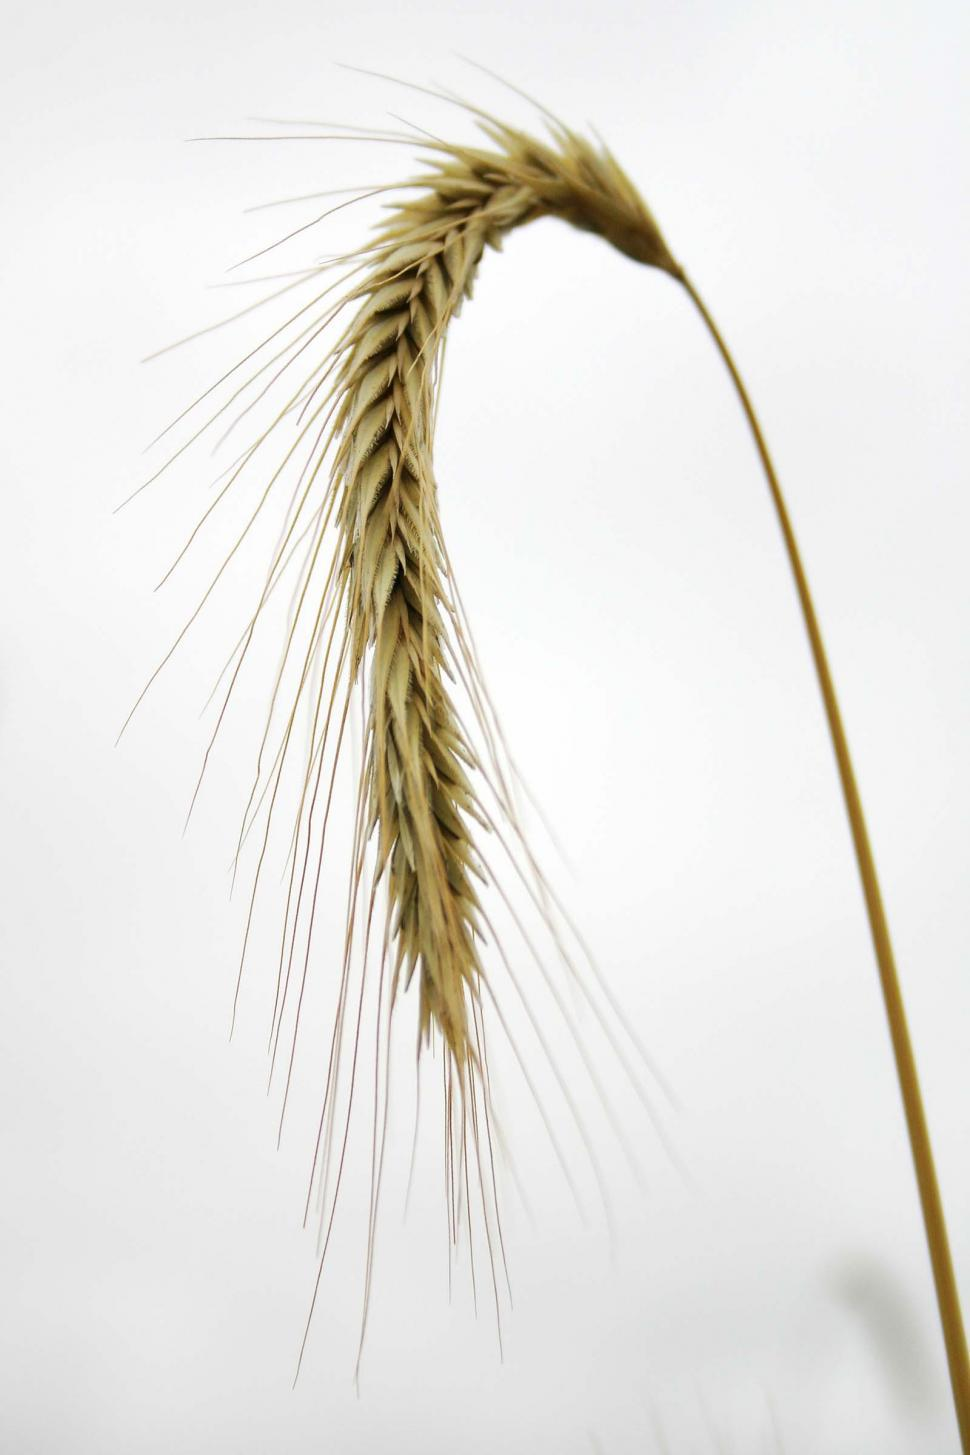 Download Free Stock Photo of Stalk of wheat